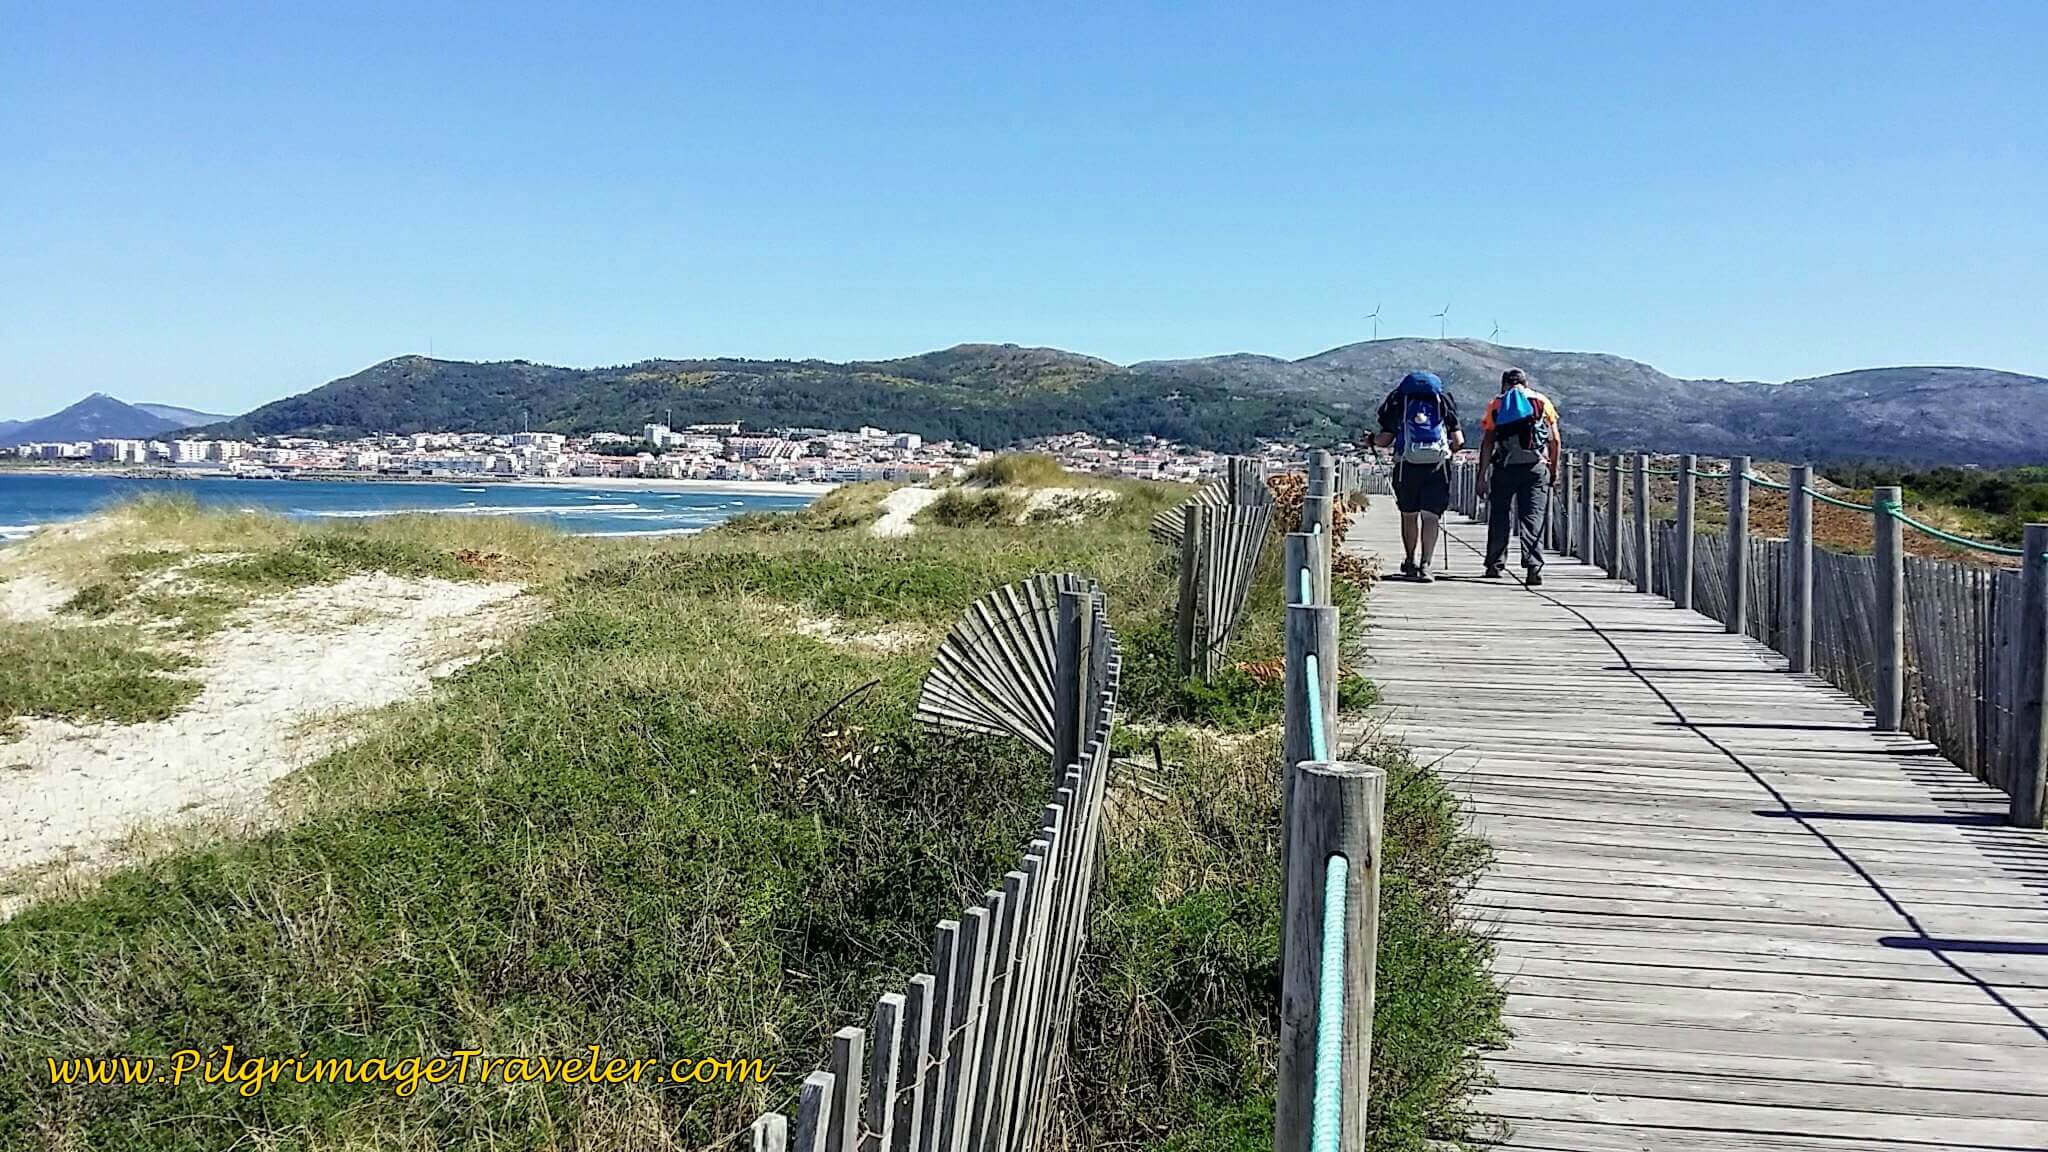 Boardwalk Through Dunes Towards Âncora on day eighteen of the Portuguese Way on the Senda Litoral